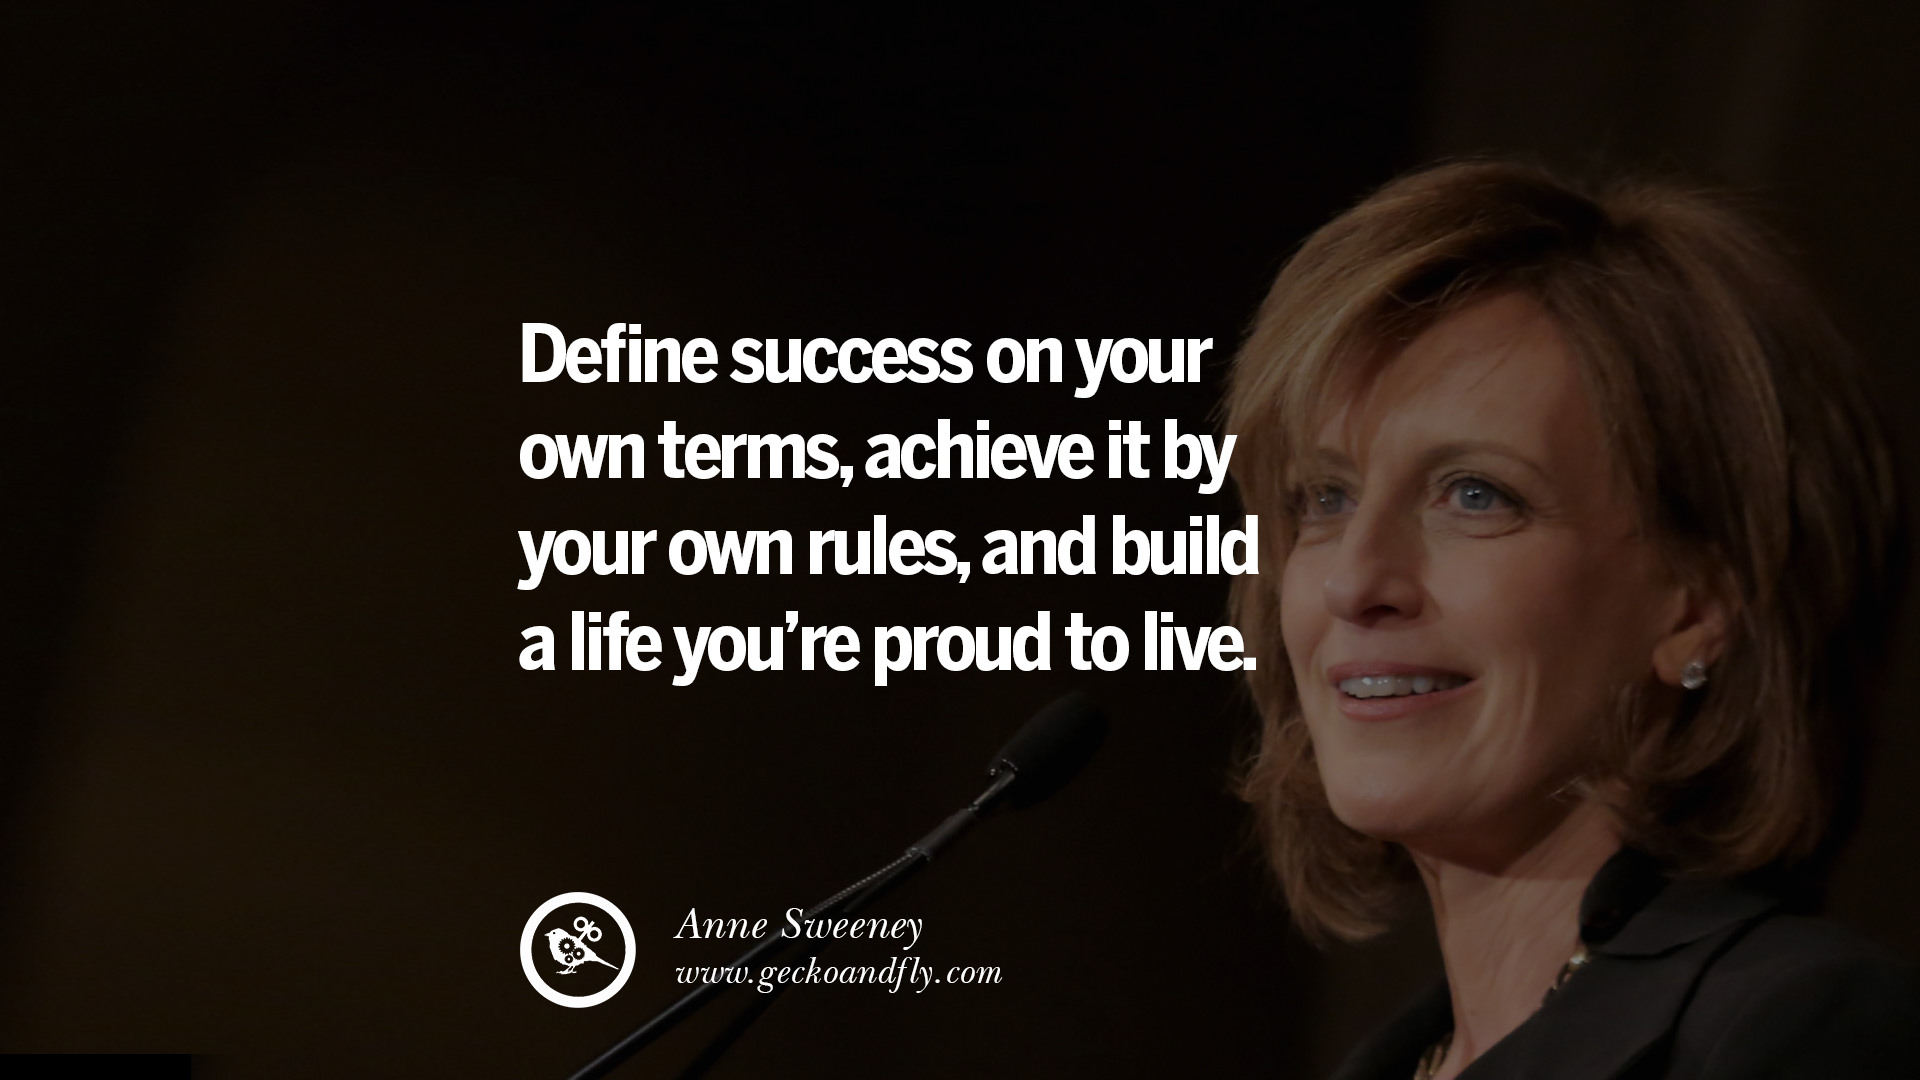 Quotes By Famous Women 10 Quotessuccessful Women In Celebration With The Second Wave